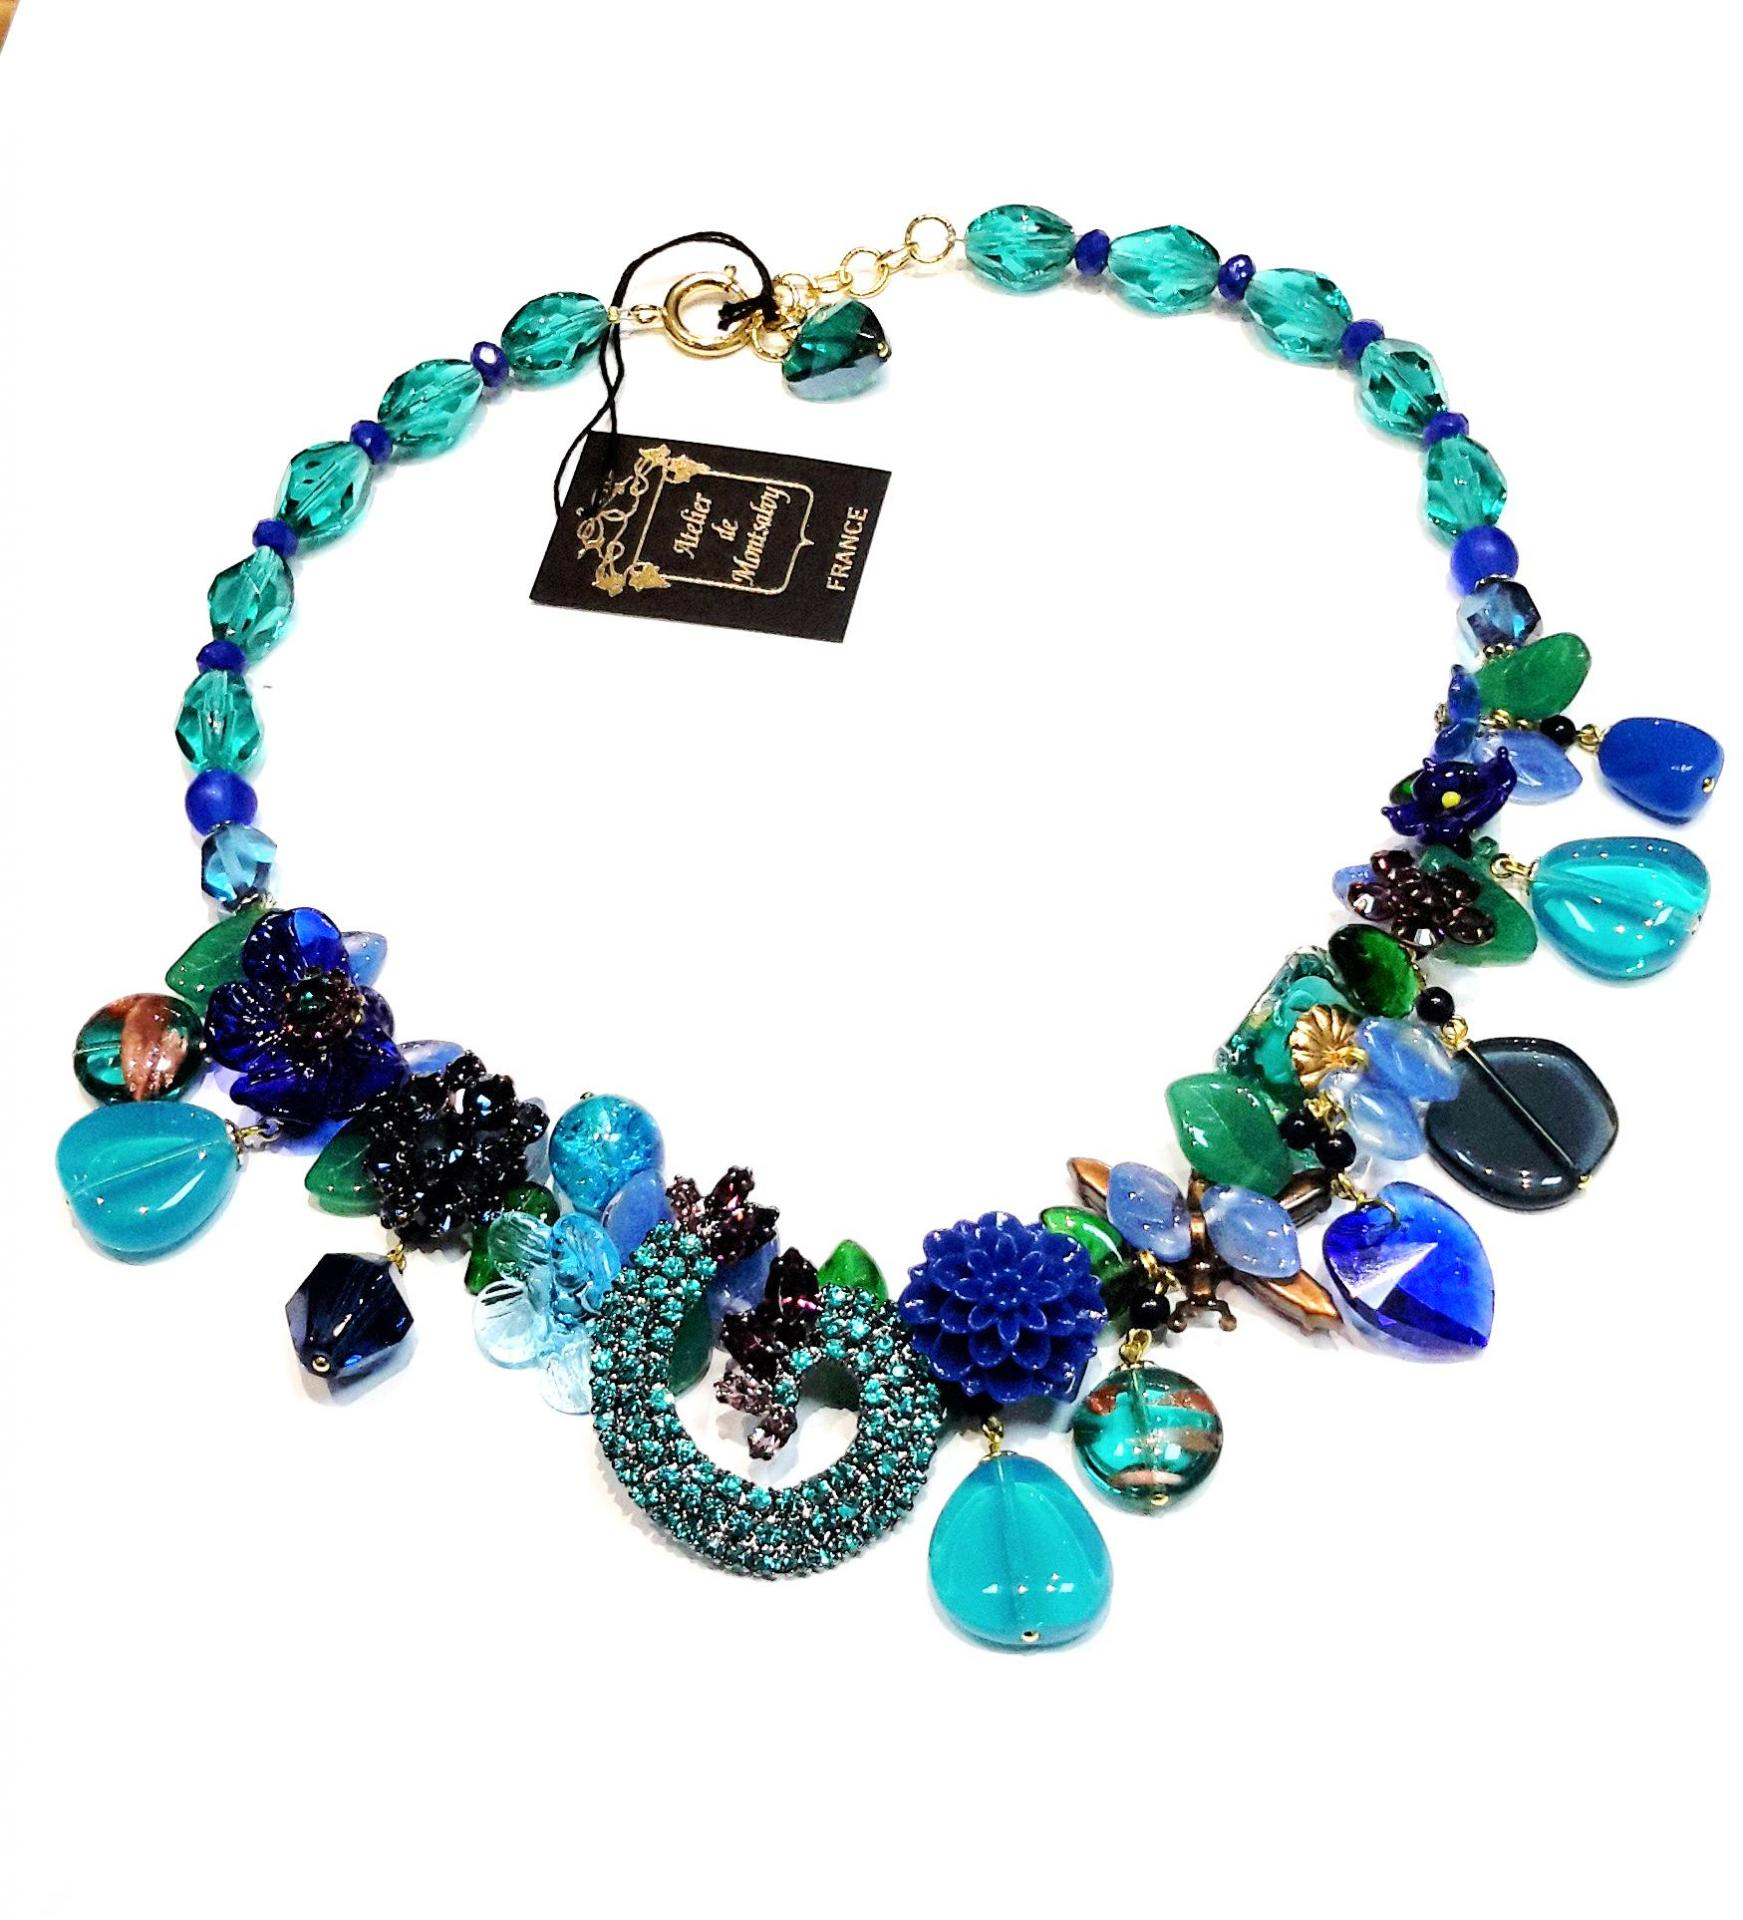 Collier majestic blue n6 245